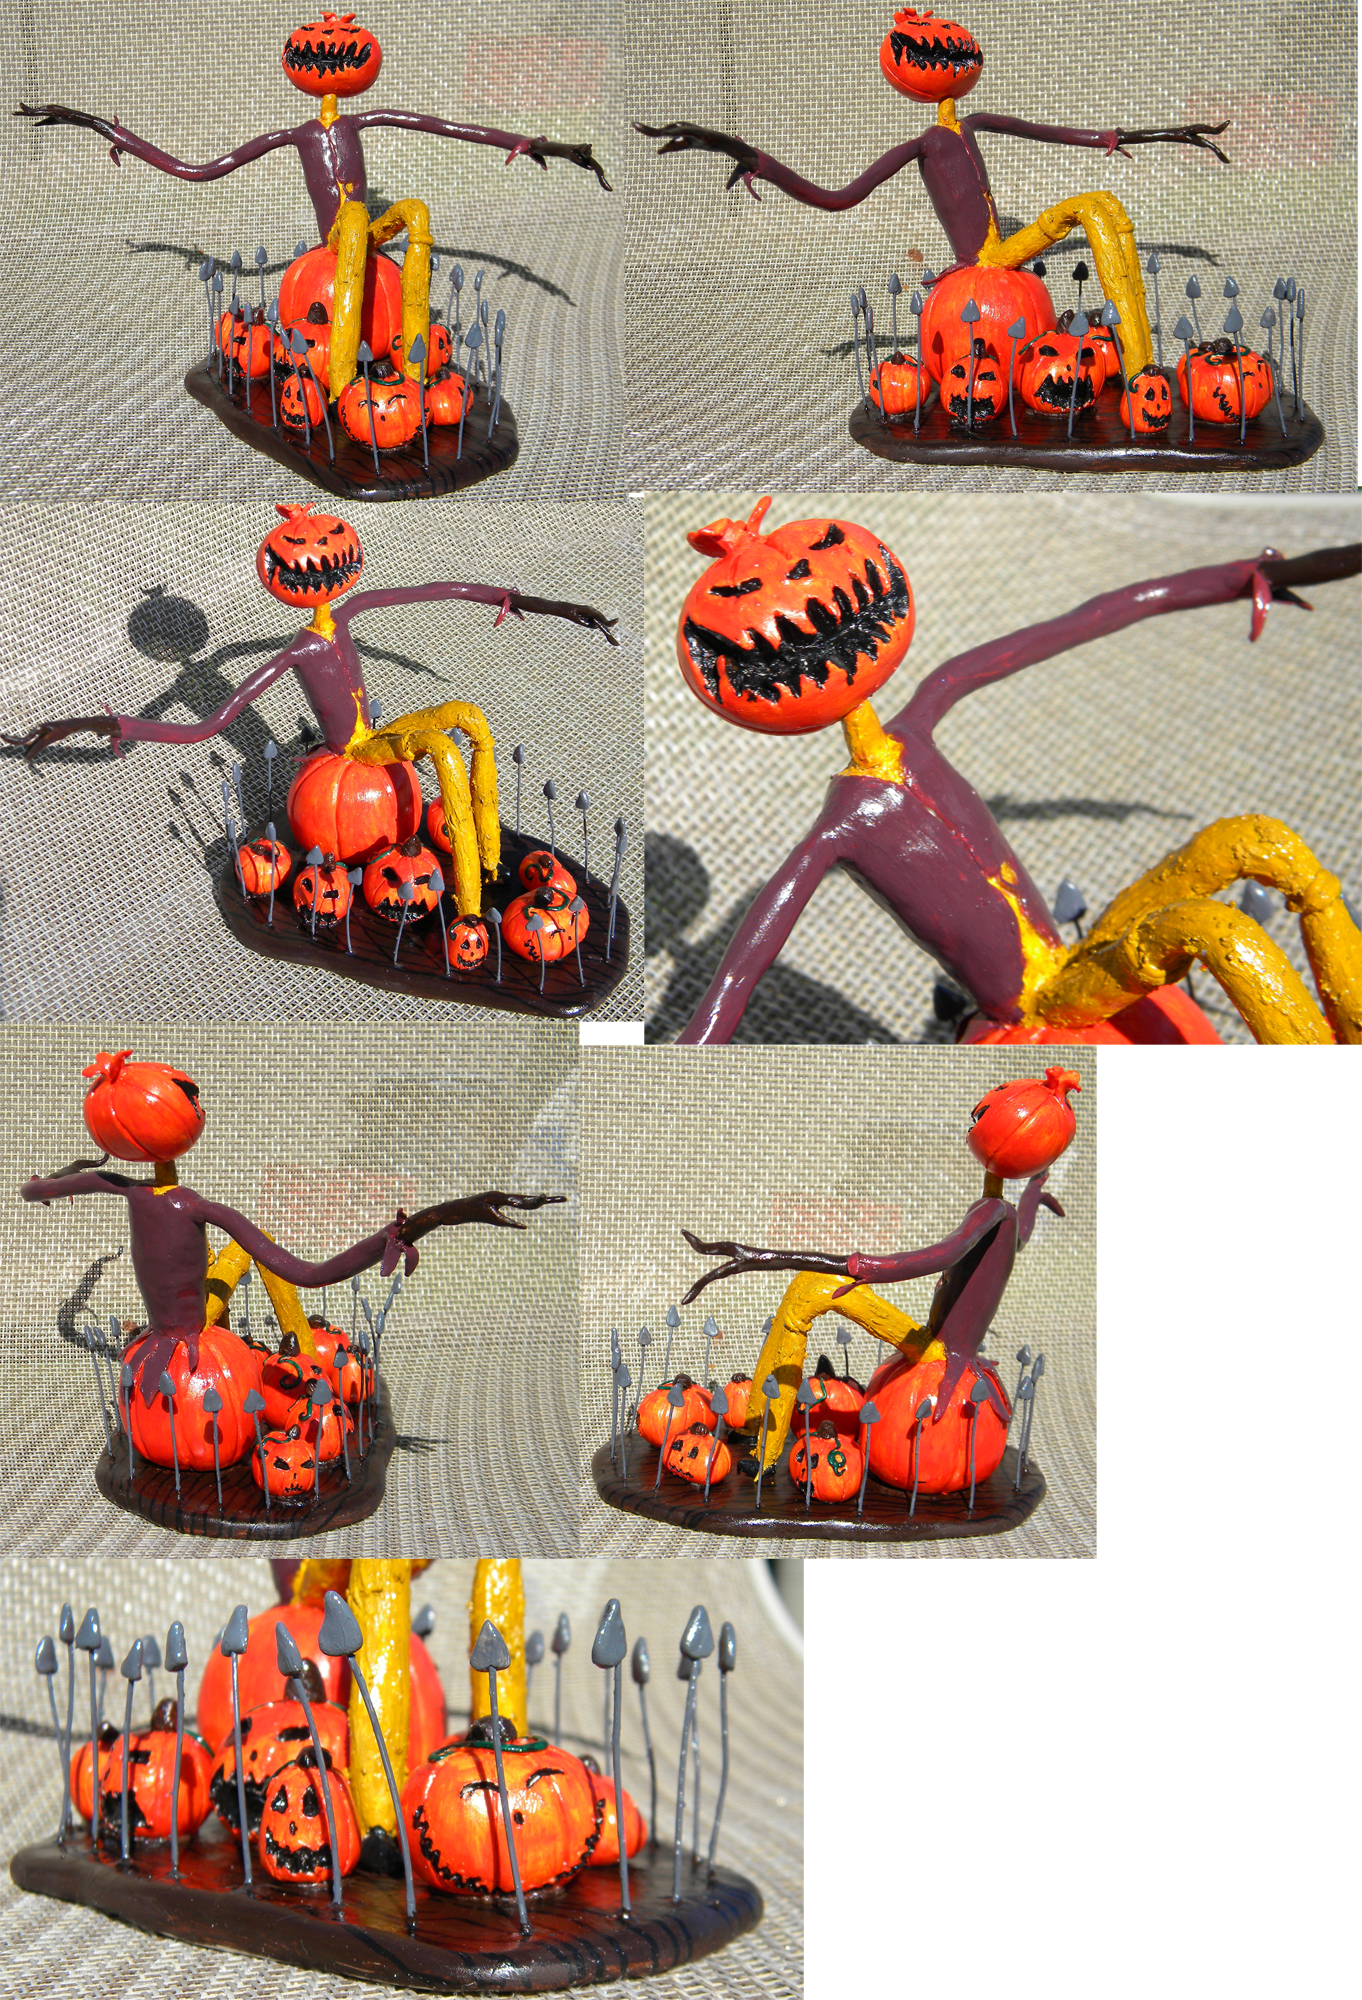 Pumpkin King Sculpture